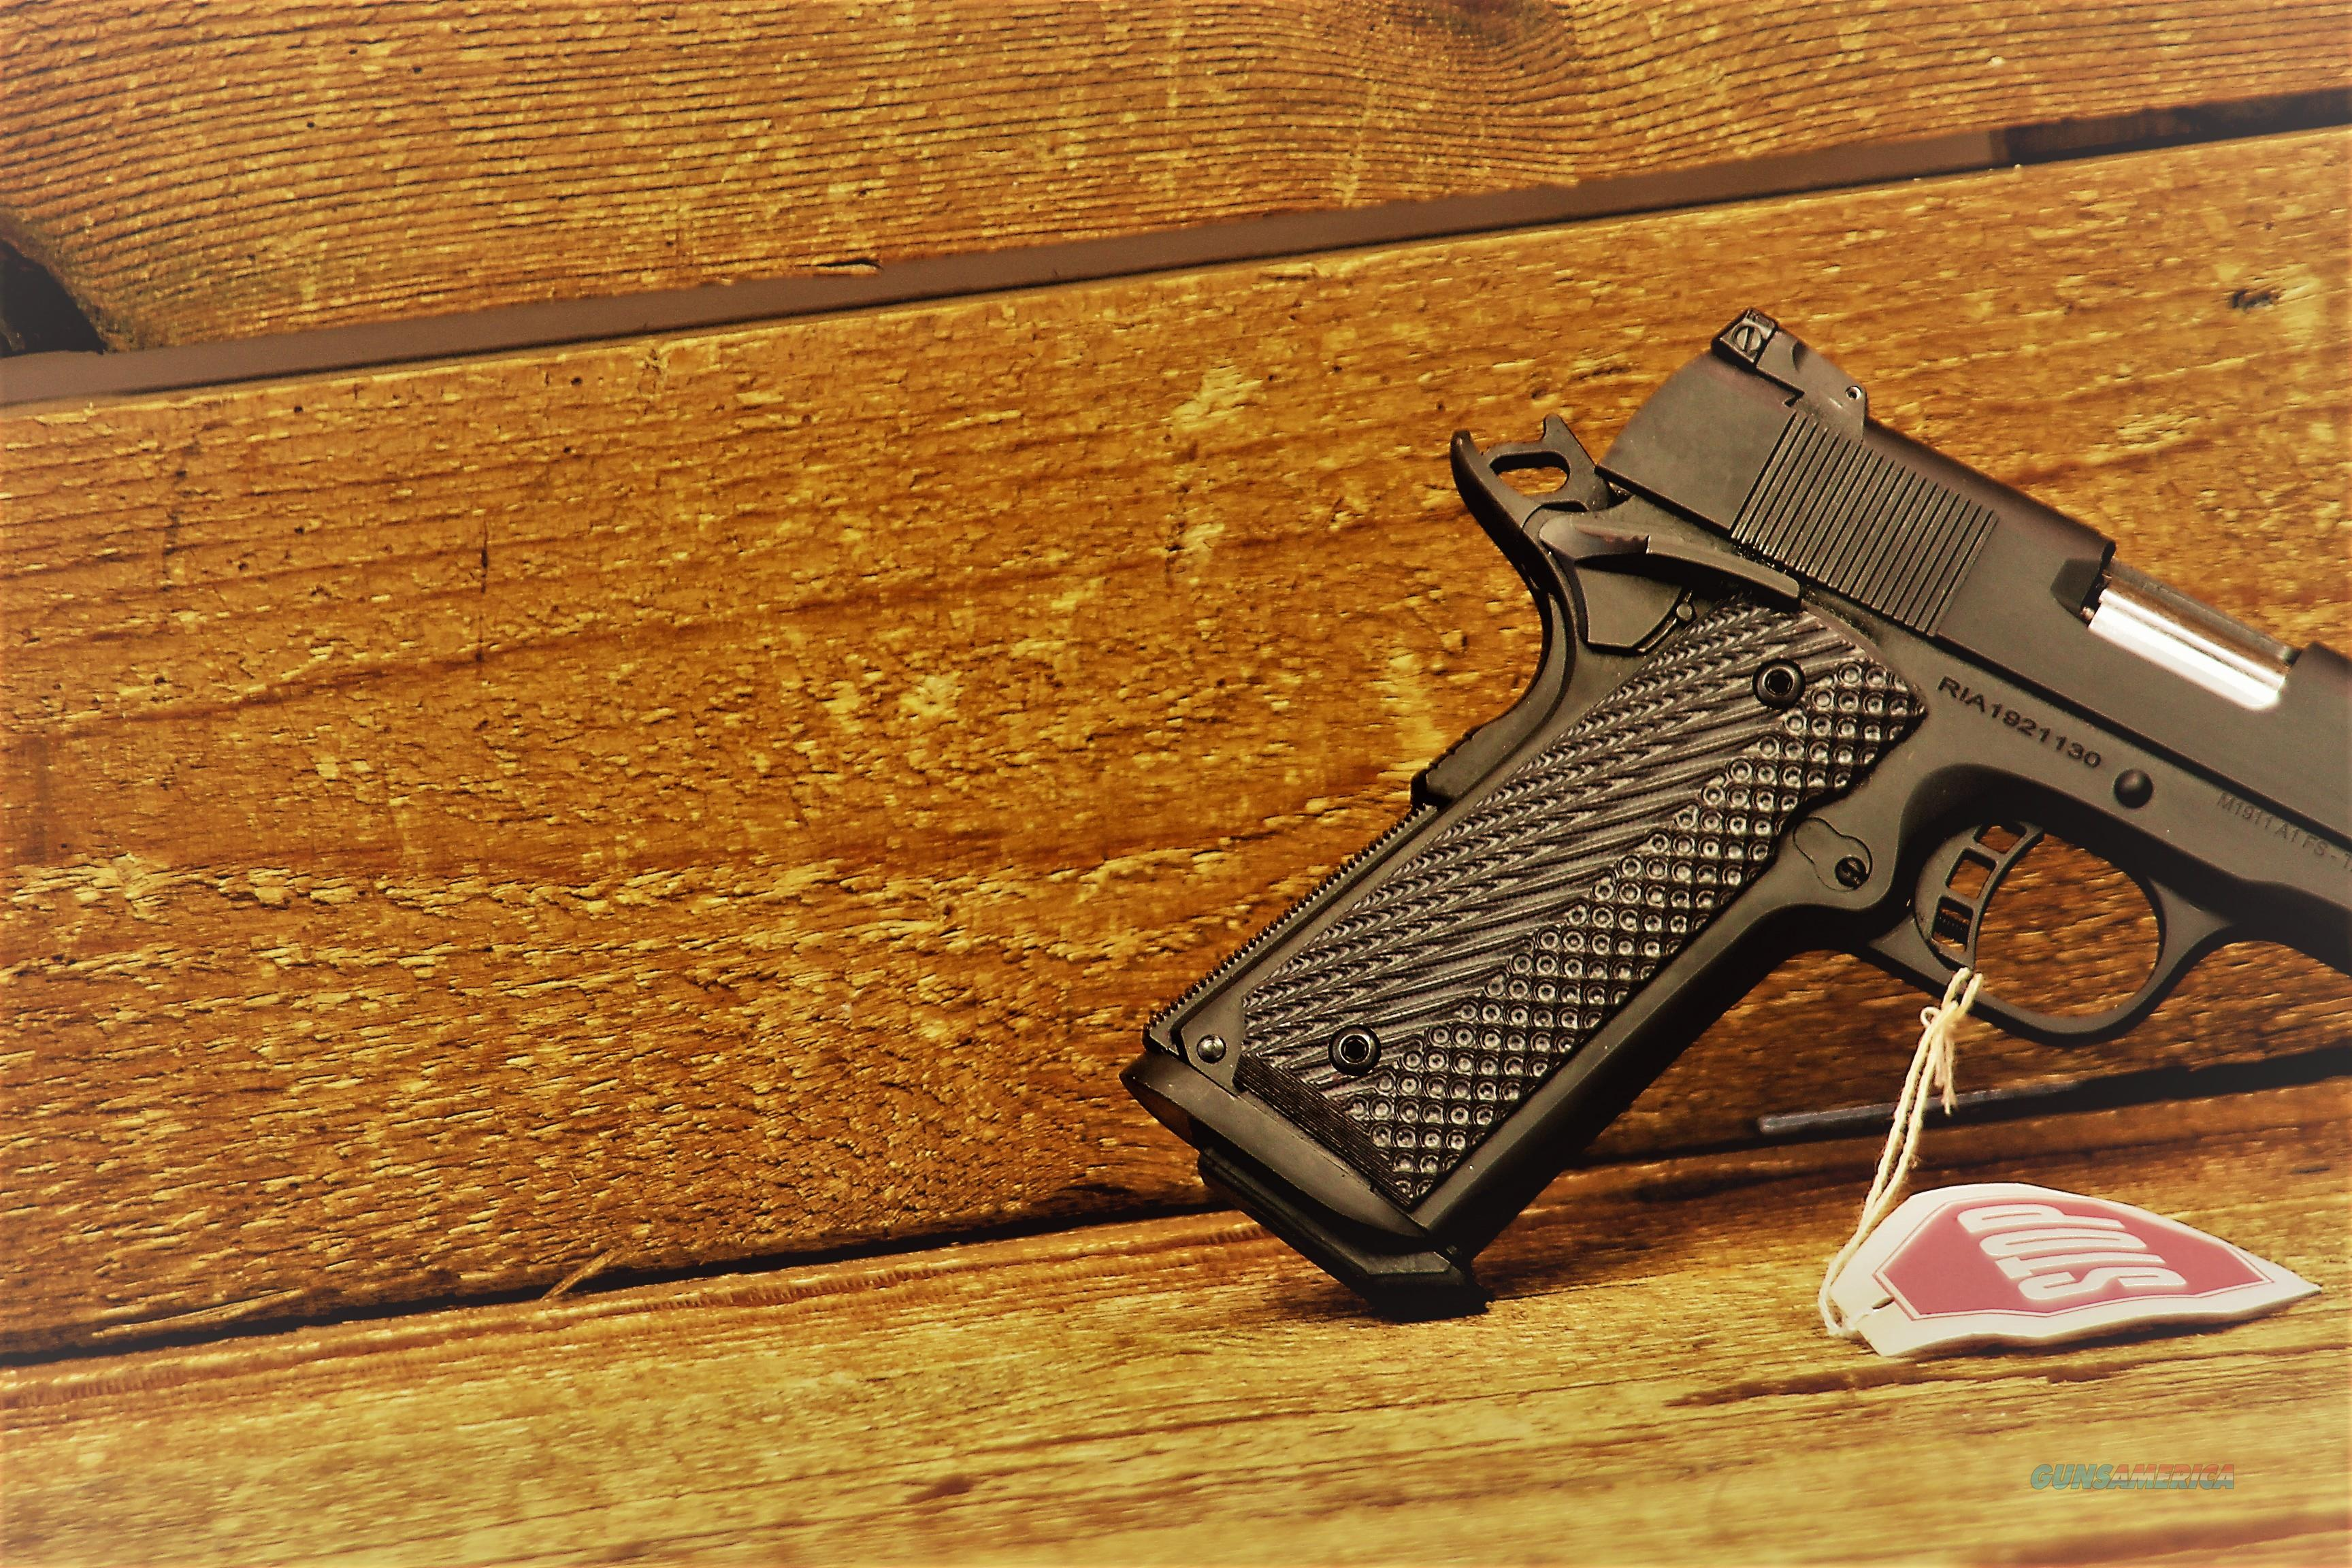 EASY PAY $56 DOWN LAYAWAY 12 MONTHLY PAYMENTS Armscor Rock Island Armory  RIA Battle Proven Design 1911A1 1911 A1 10mm RIA standard 1911-A1  parkerized